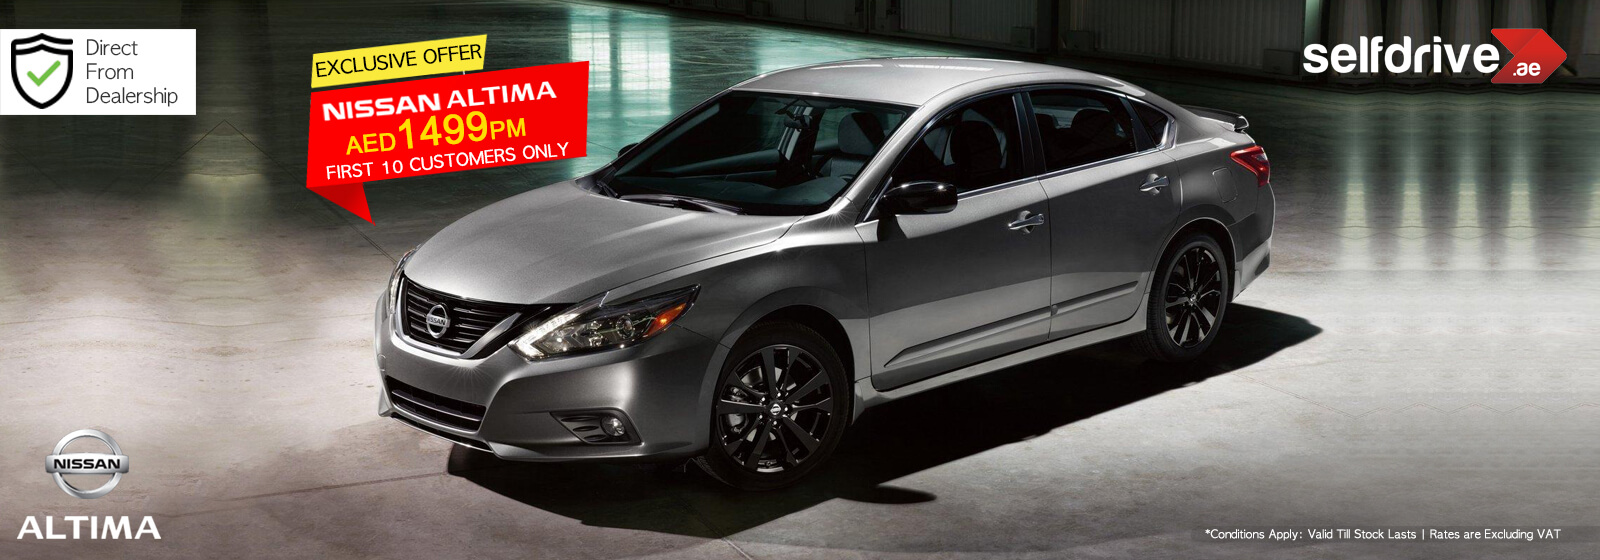 Rent Nissan Altima exclusive offer